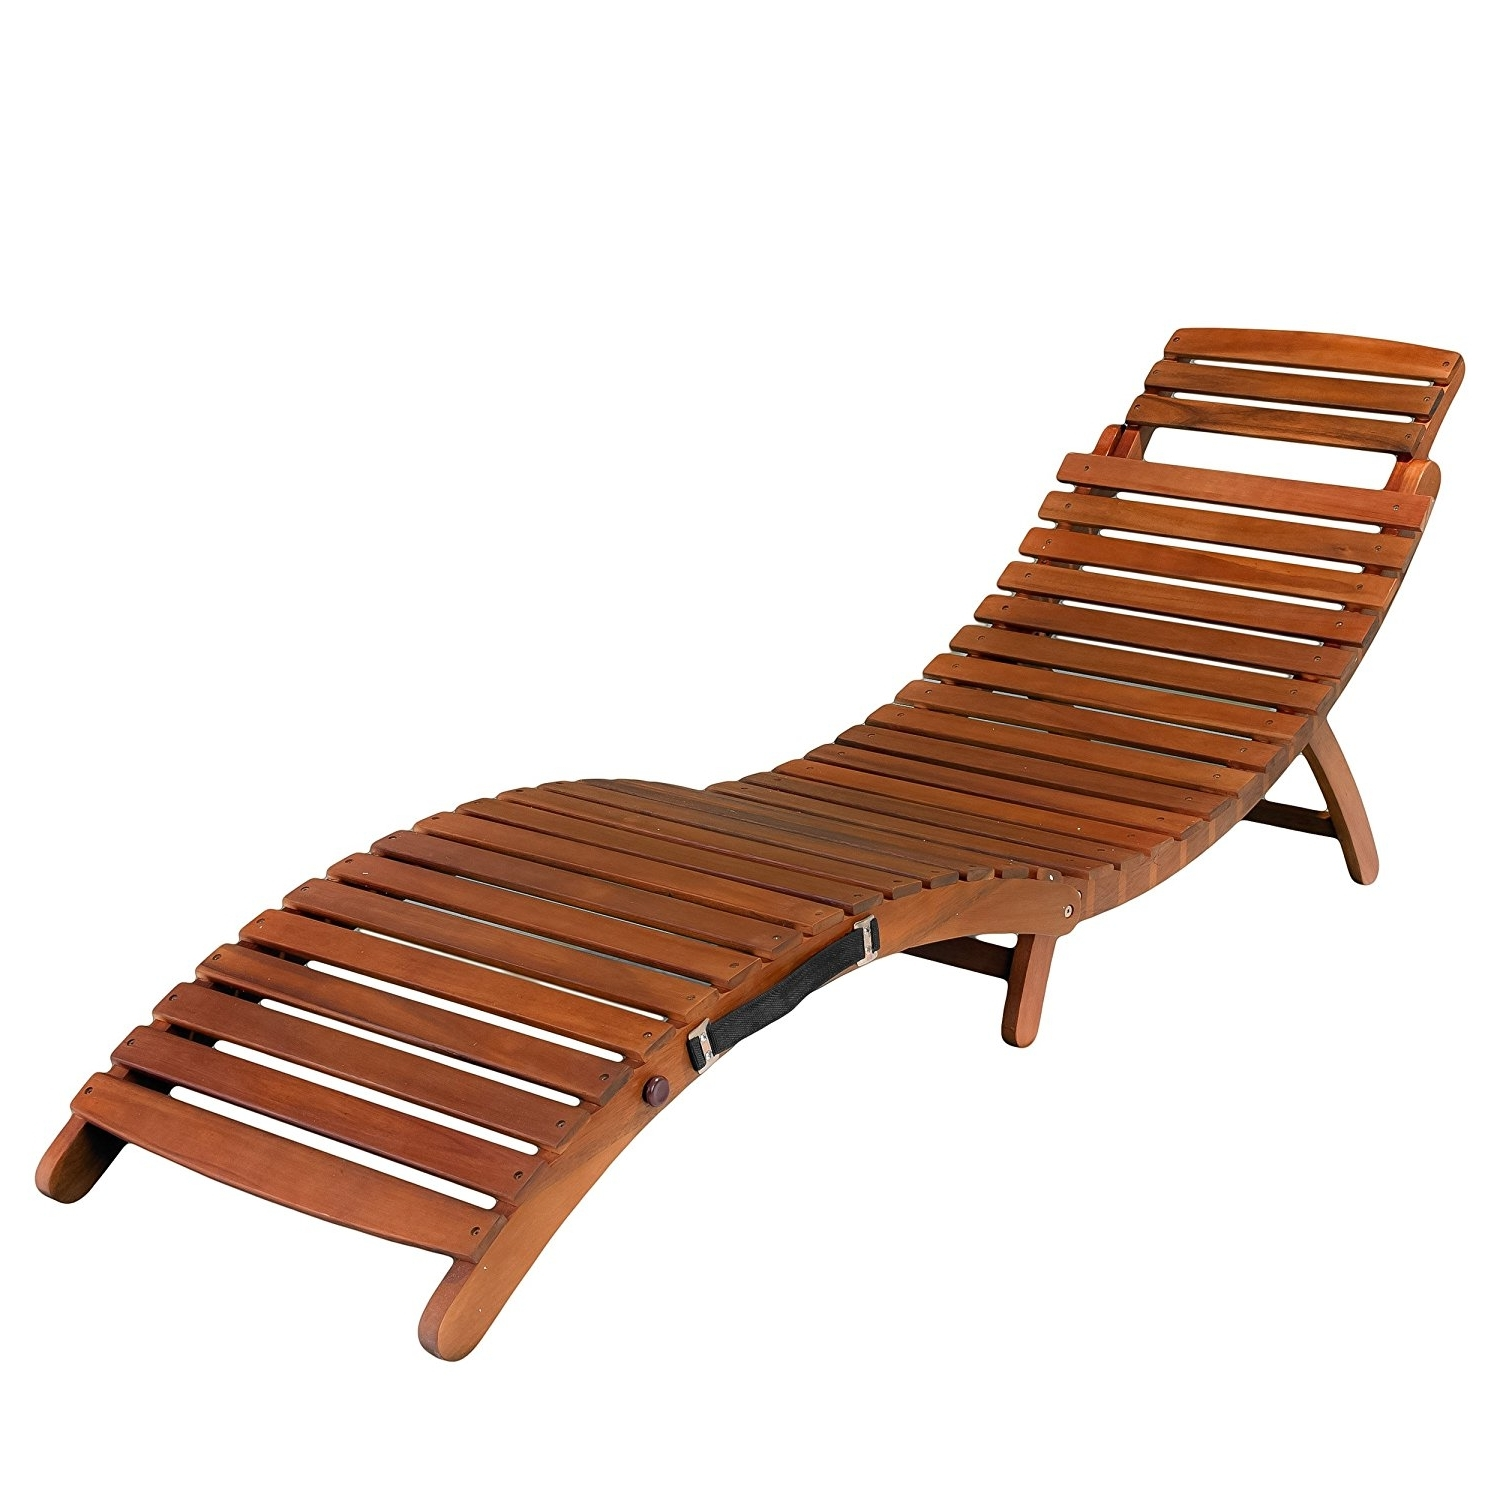 Popular Wood Chaise Lounge Chairs With Amazon: Best Selling Del Rio Wood Outdoor Chaise Lounge (View 6 of 15)